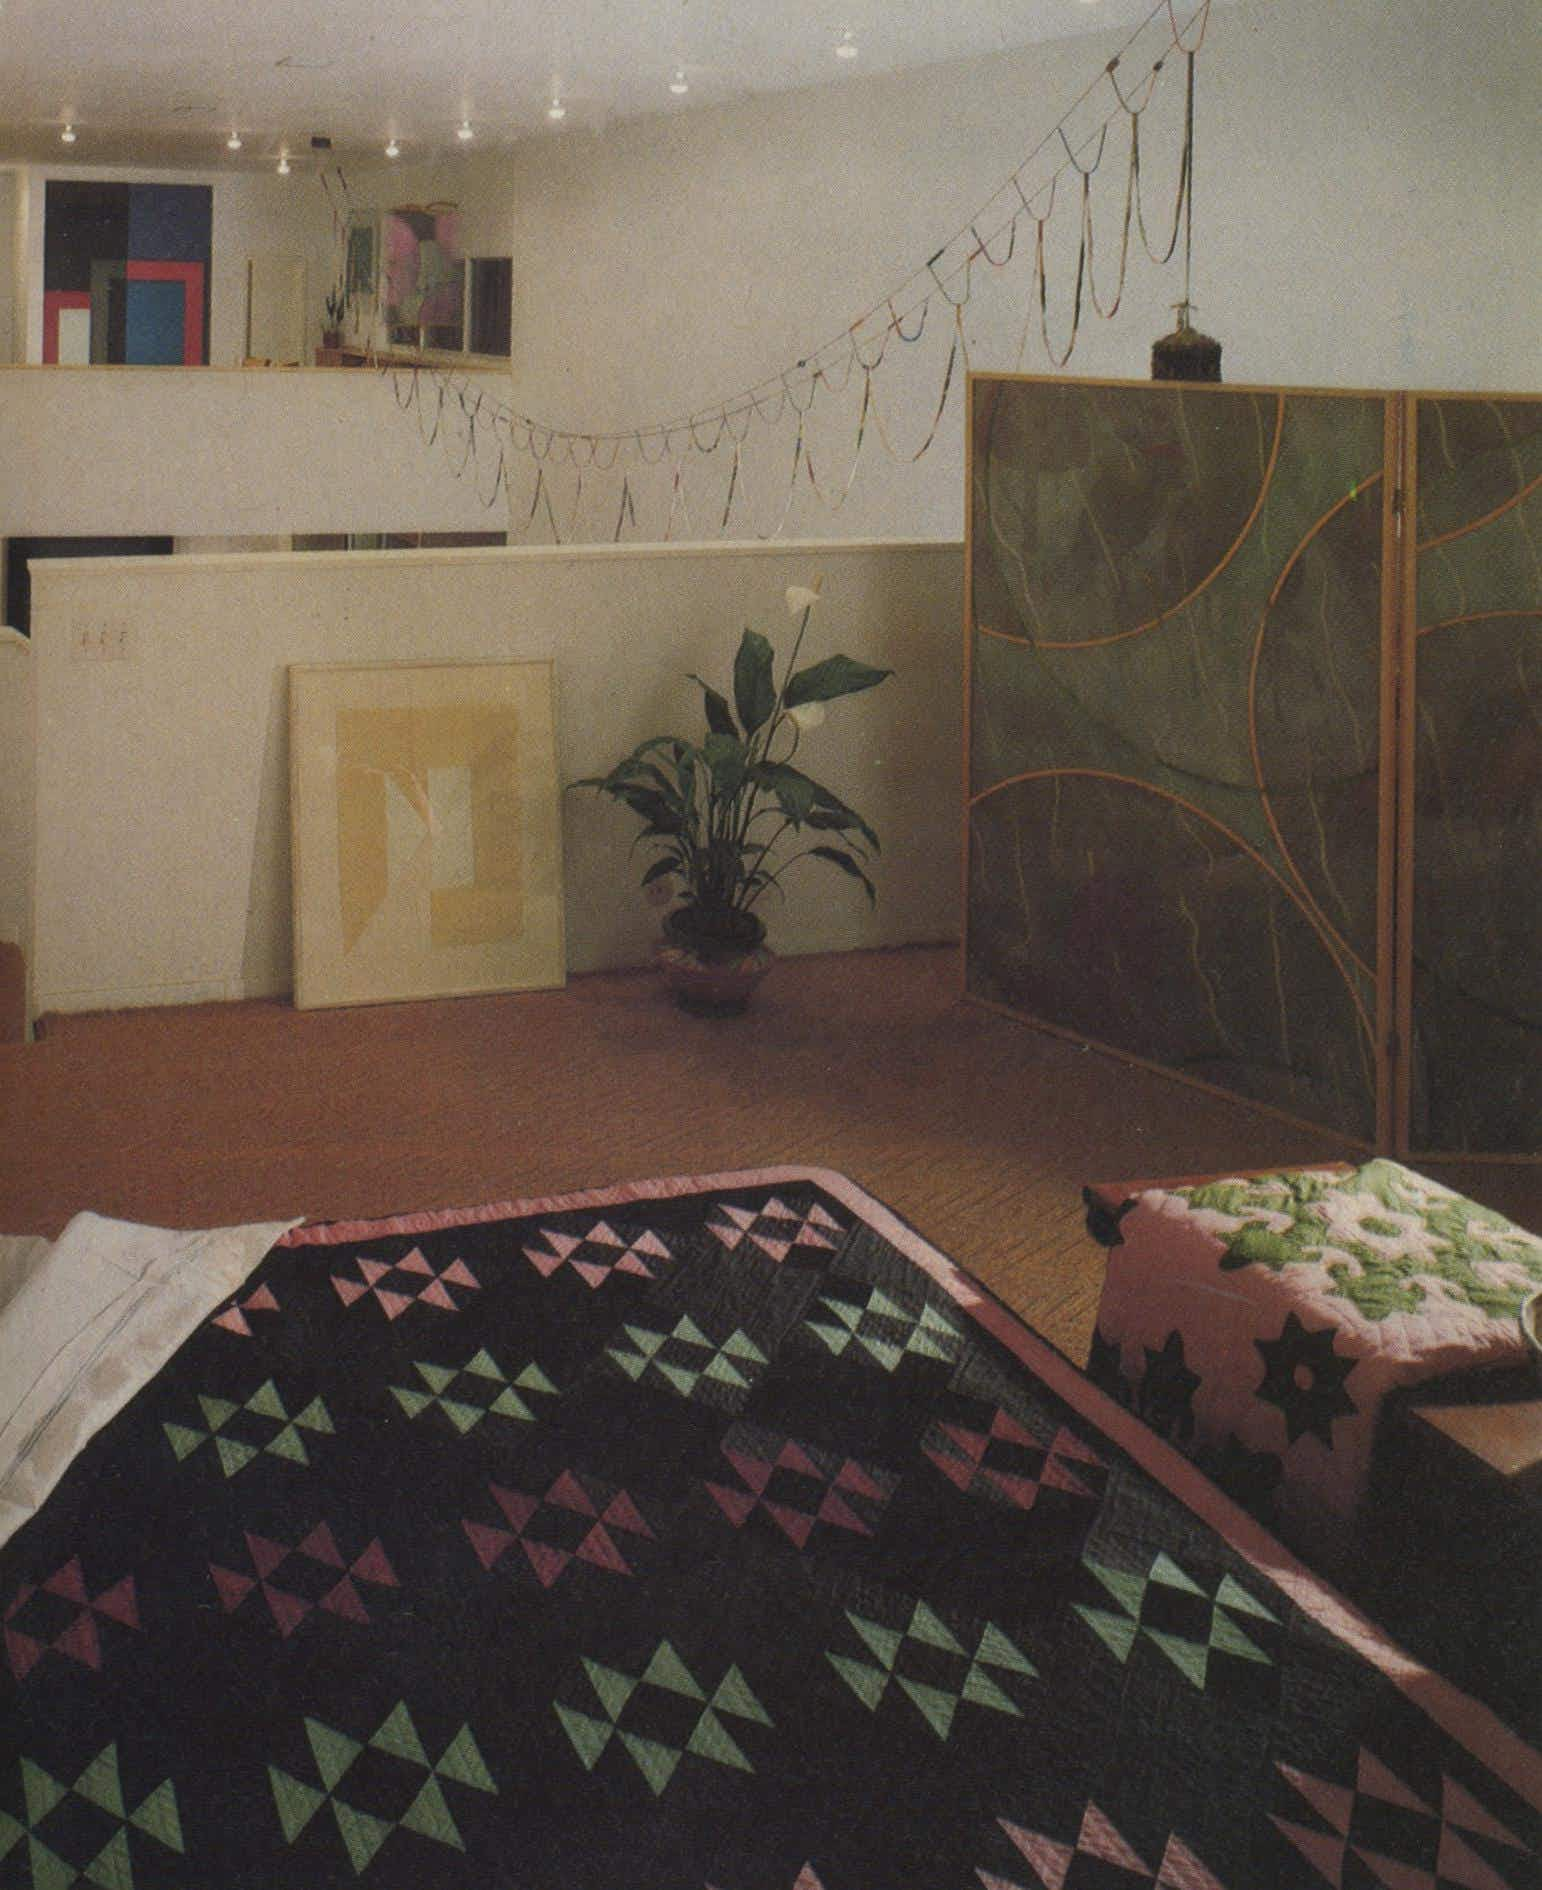 ": On the bed is a 19th-century Amish quilt from Ohio. The 1875 Terrace-style Navaho blanket on the stair rail is a collector's piece. The Billy Al Bengston screen (right) and Joe Goode oil (over the bed) pick up the colors of the quilt. Leaning against the wall is Gary Stephan's painting, ""Hours 3."""